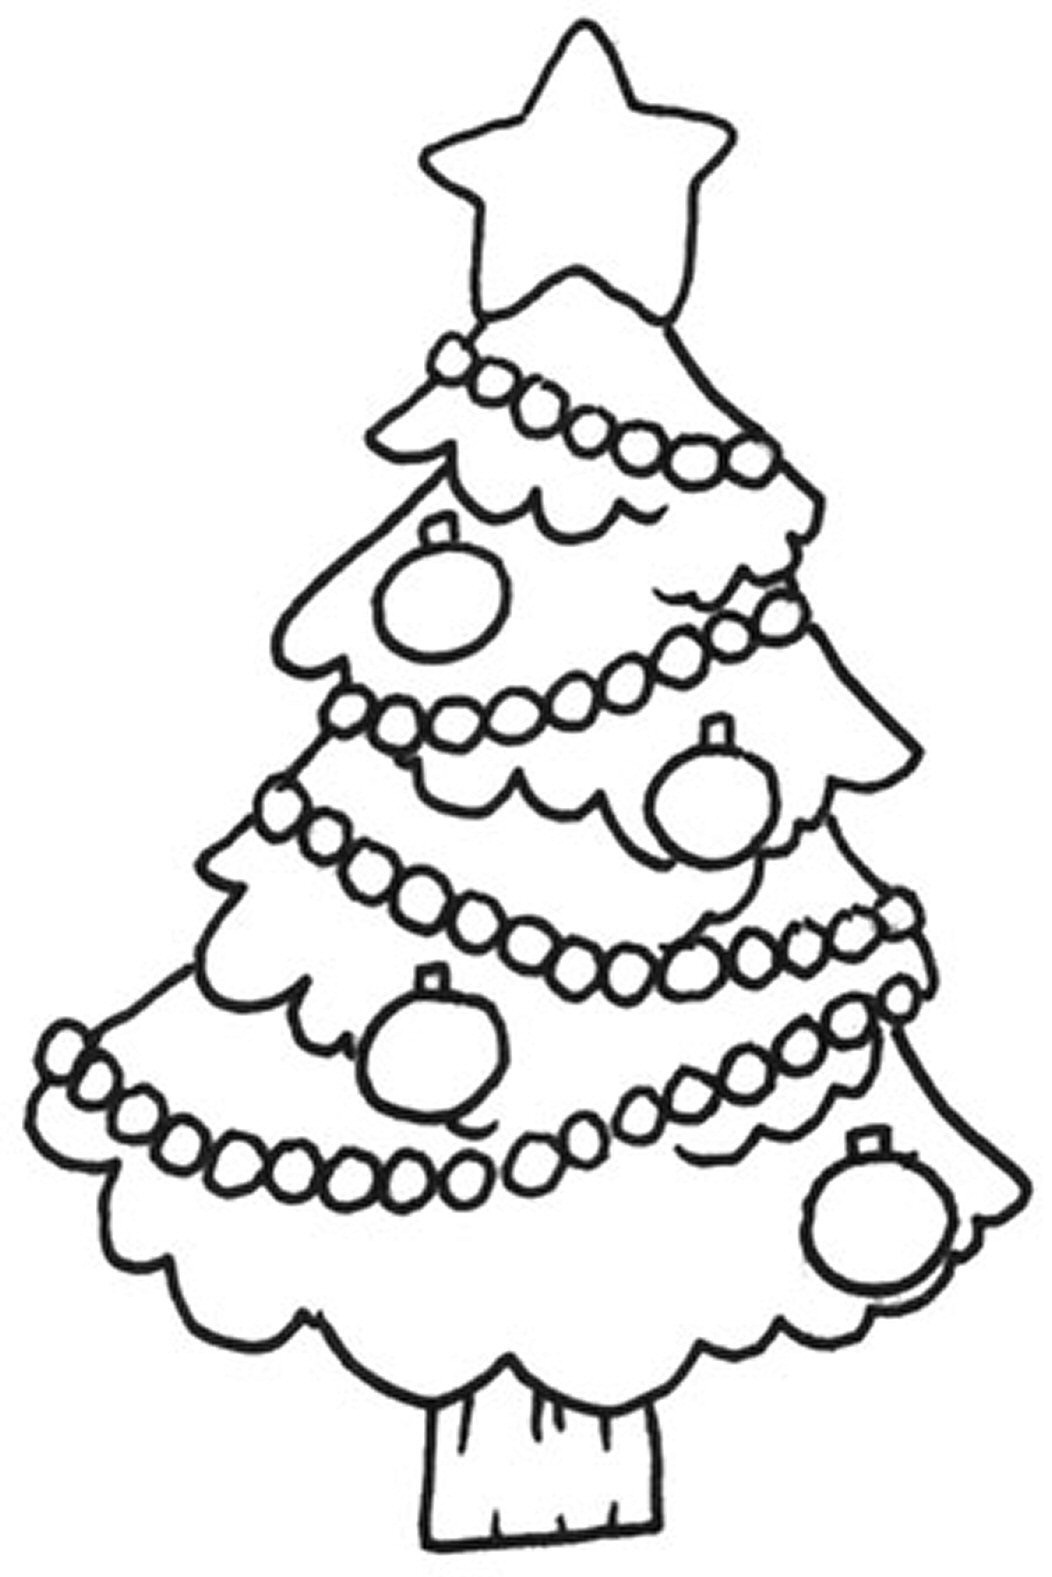 Free Printable Christmas Tree Coloring Pages For Kids   christmas tree coloring sheet